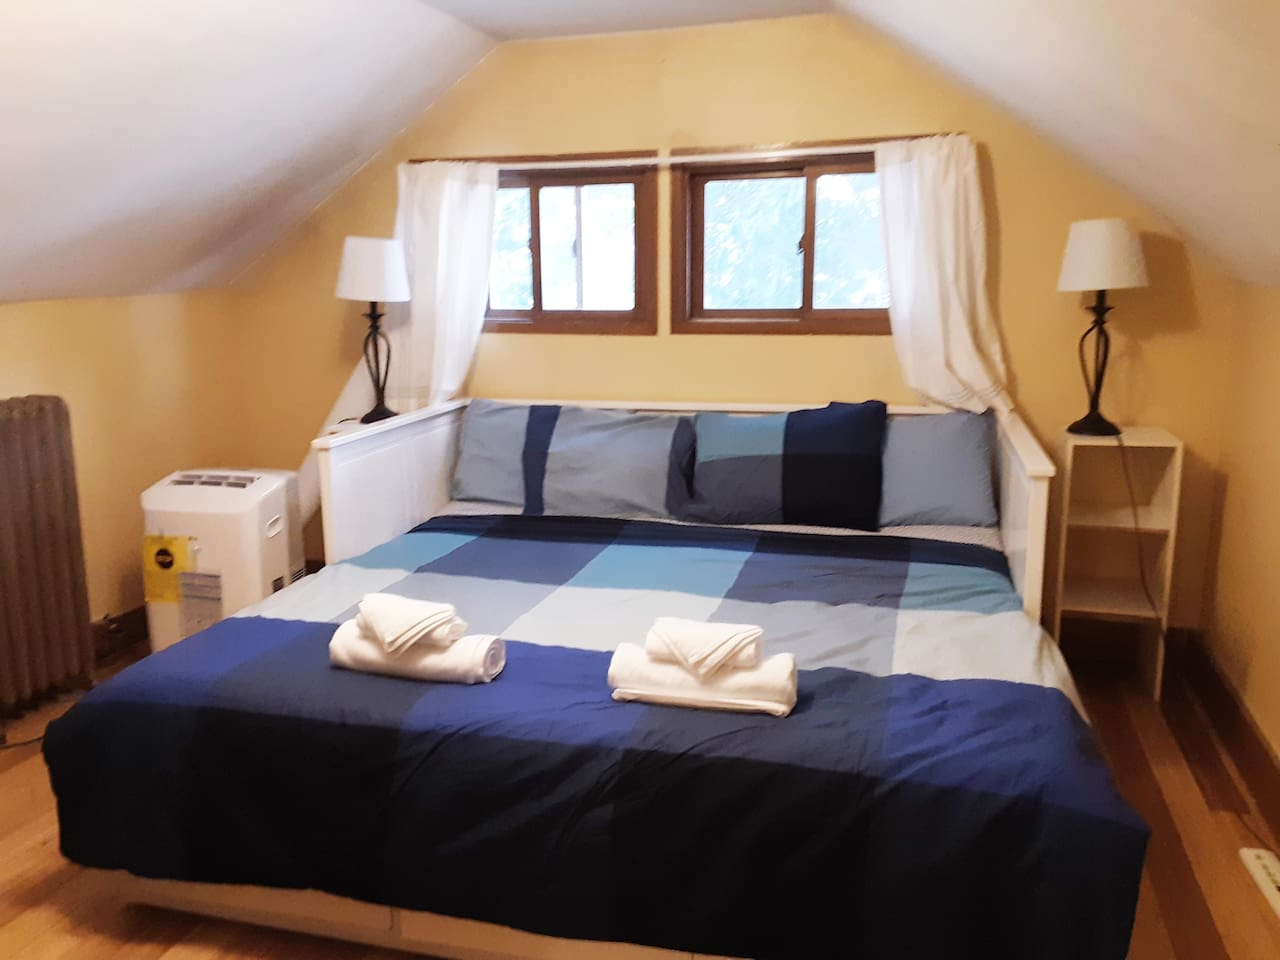 In Big Ole Red Guest House third floor,  Gold King  sleeps 2+. The queen bed  sleeps 2. Up a narrow flight from the bathroom,   it is a no frills bed and breakfast. Limited parking is first come first serve with overflow parking is up the street.